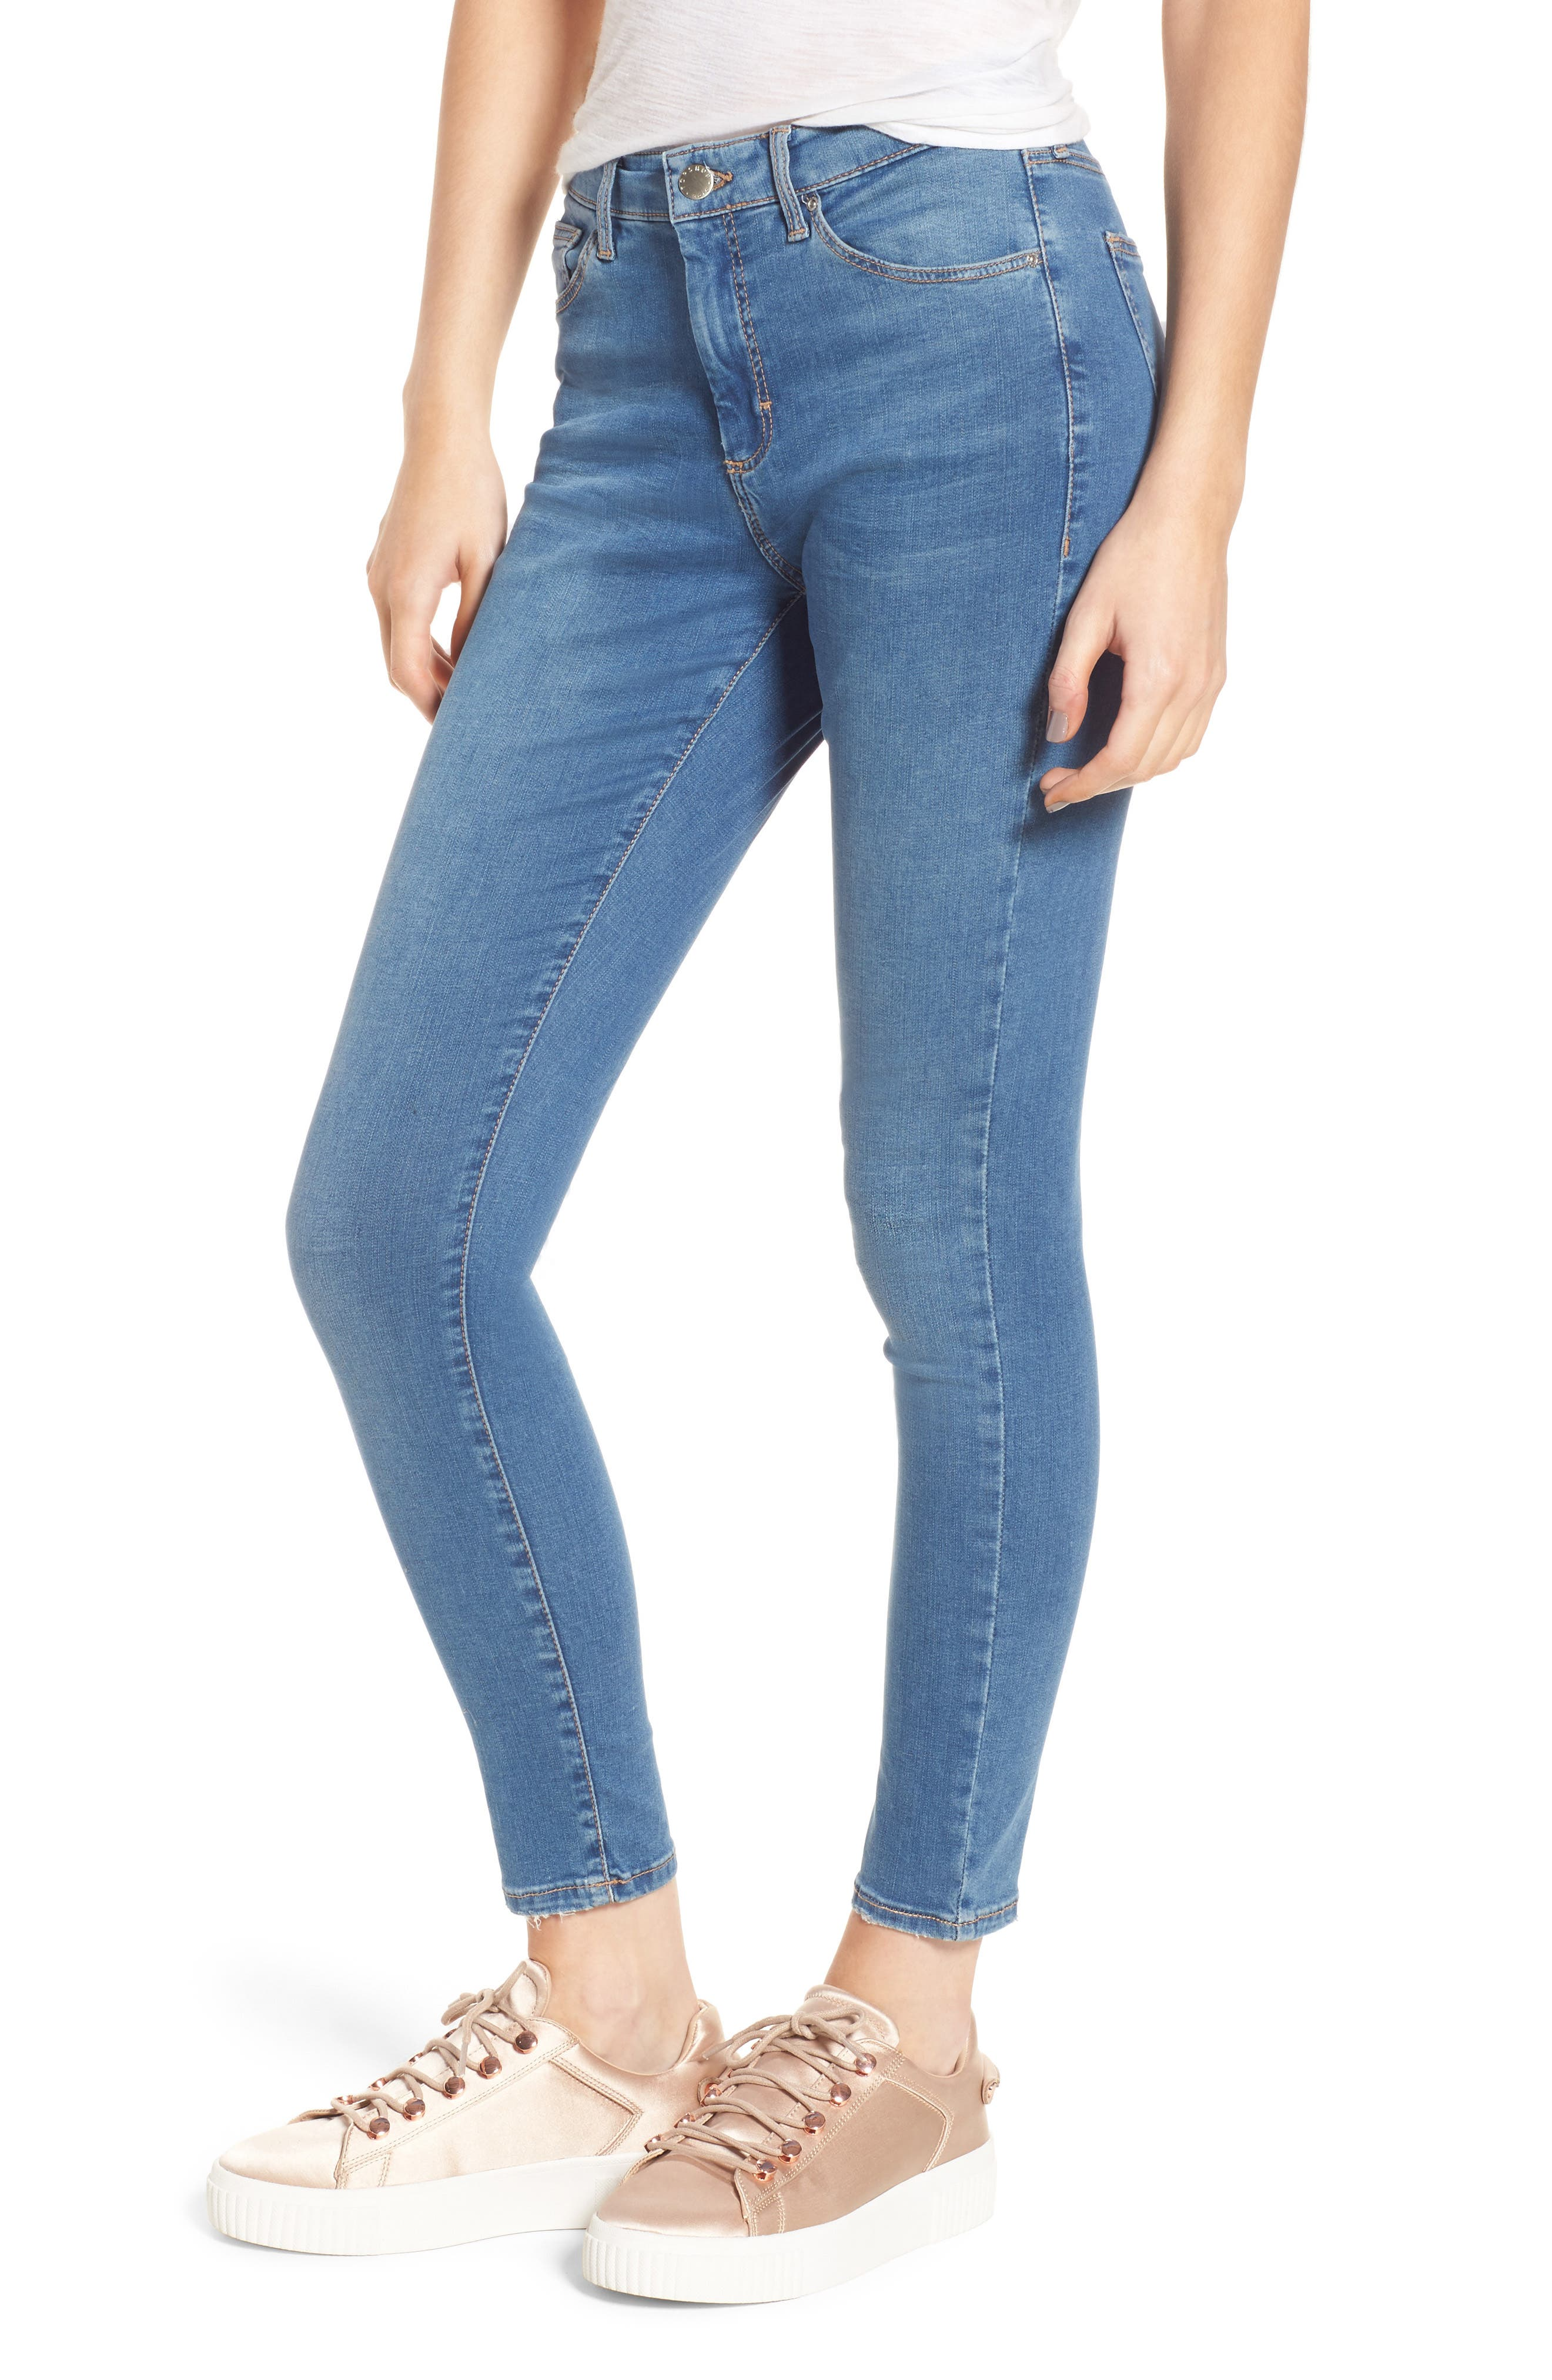 Leigh Skinny Jeans,                             Main thumbnail 1, color,                             400